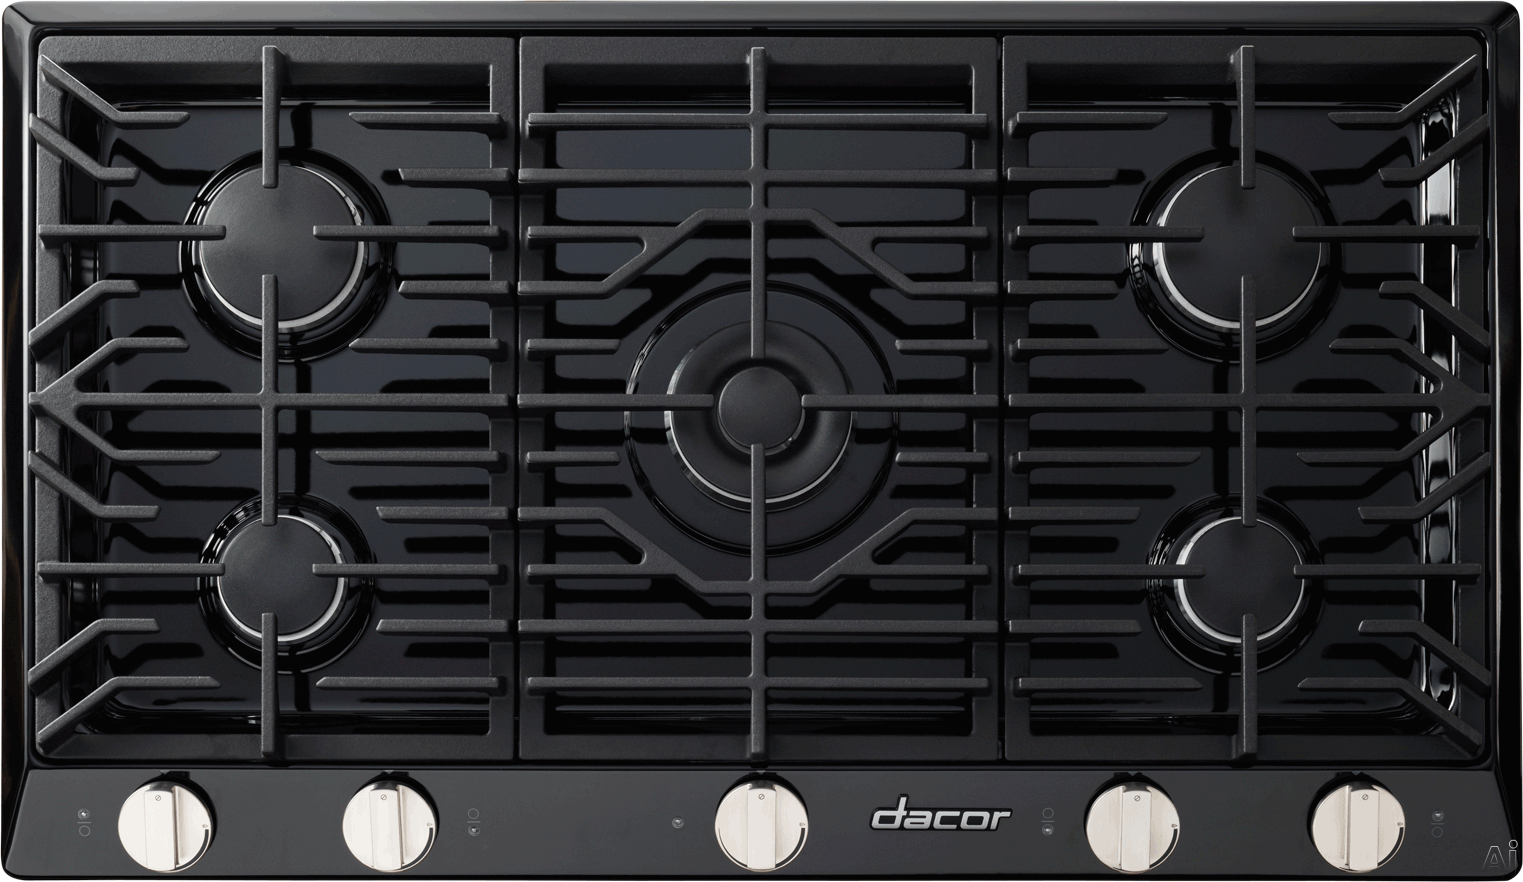 Dacor Renaissance RNCT305GBLPH 30 Inch Gas Cooktop with 5 Sealed Burners, SimmerSear Burner w/ Melting Feature, Continuous Grates, Perma-Flame Ignition, Smart Flame Technology, One Piece Spill Basin, Illumina Indicator Lights and Downdraft Compatible: Bl